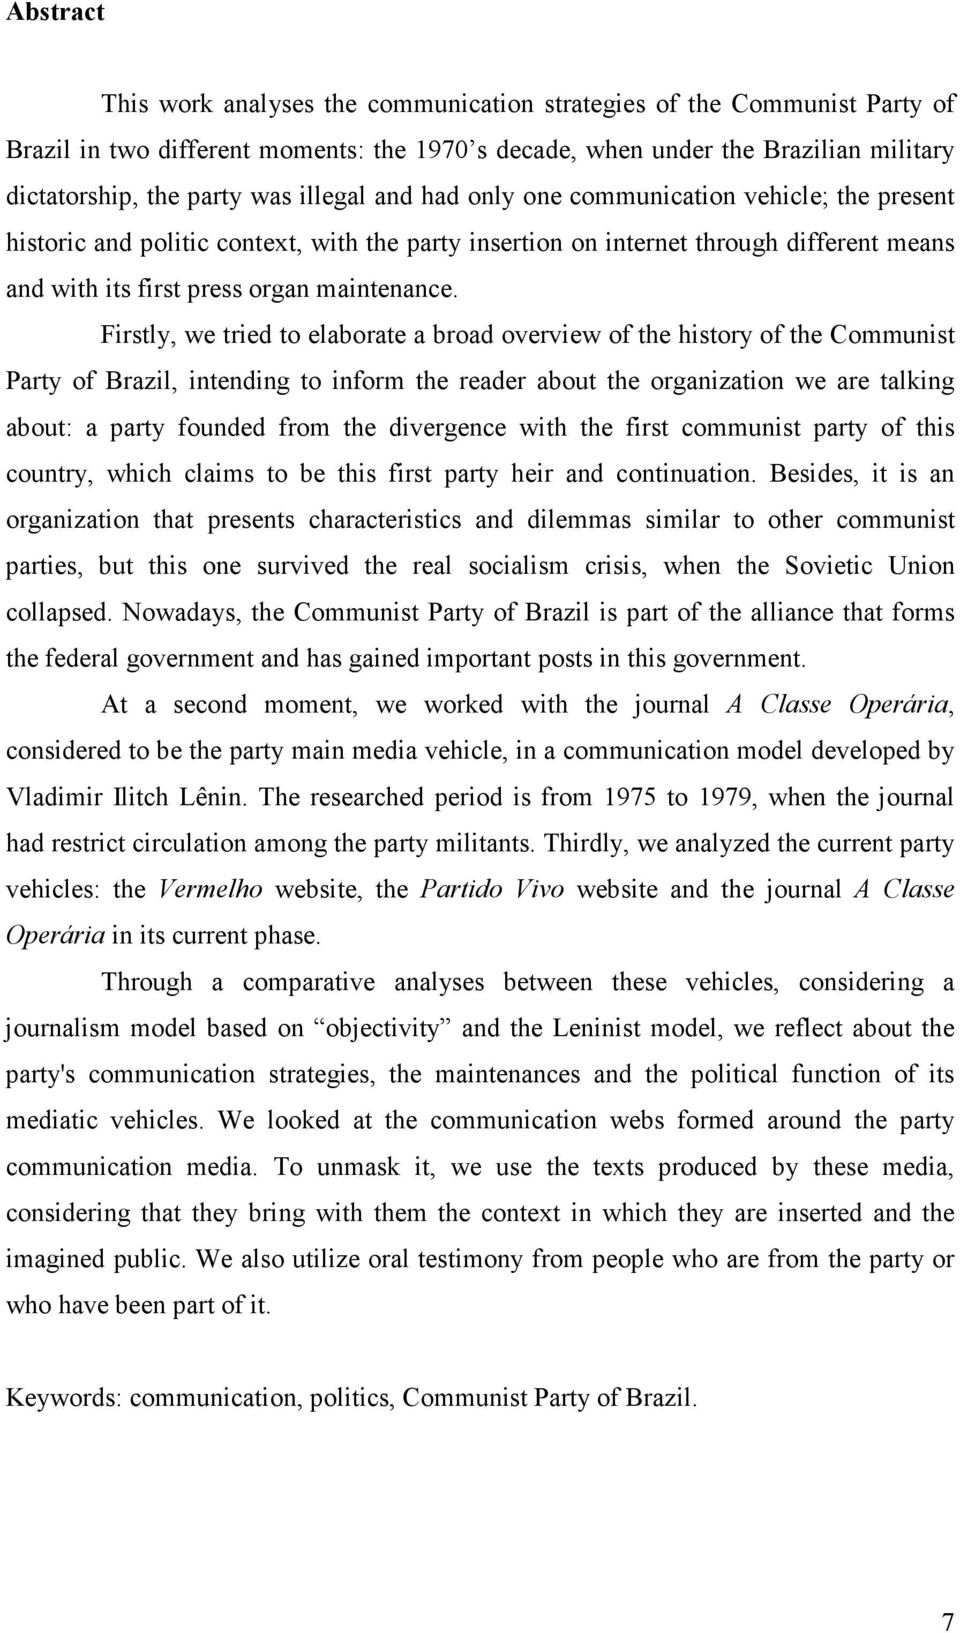 Firstly, we tried to elaborate a broad overview of the history of the Communist Party of Brazil, intending to inform the reader about the organization we are talking about: a party founded from the